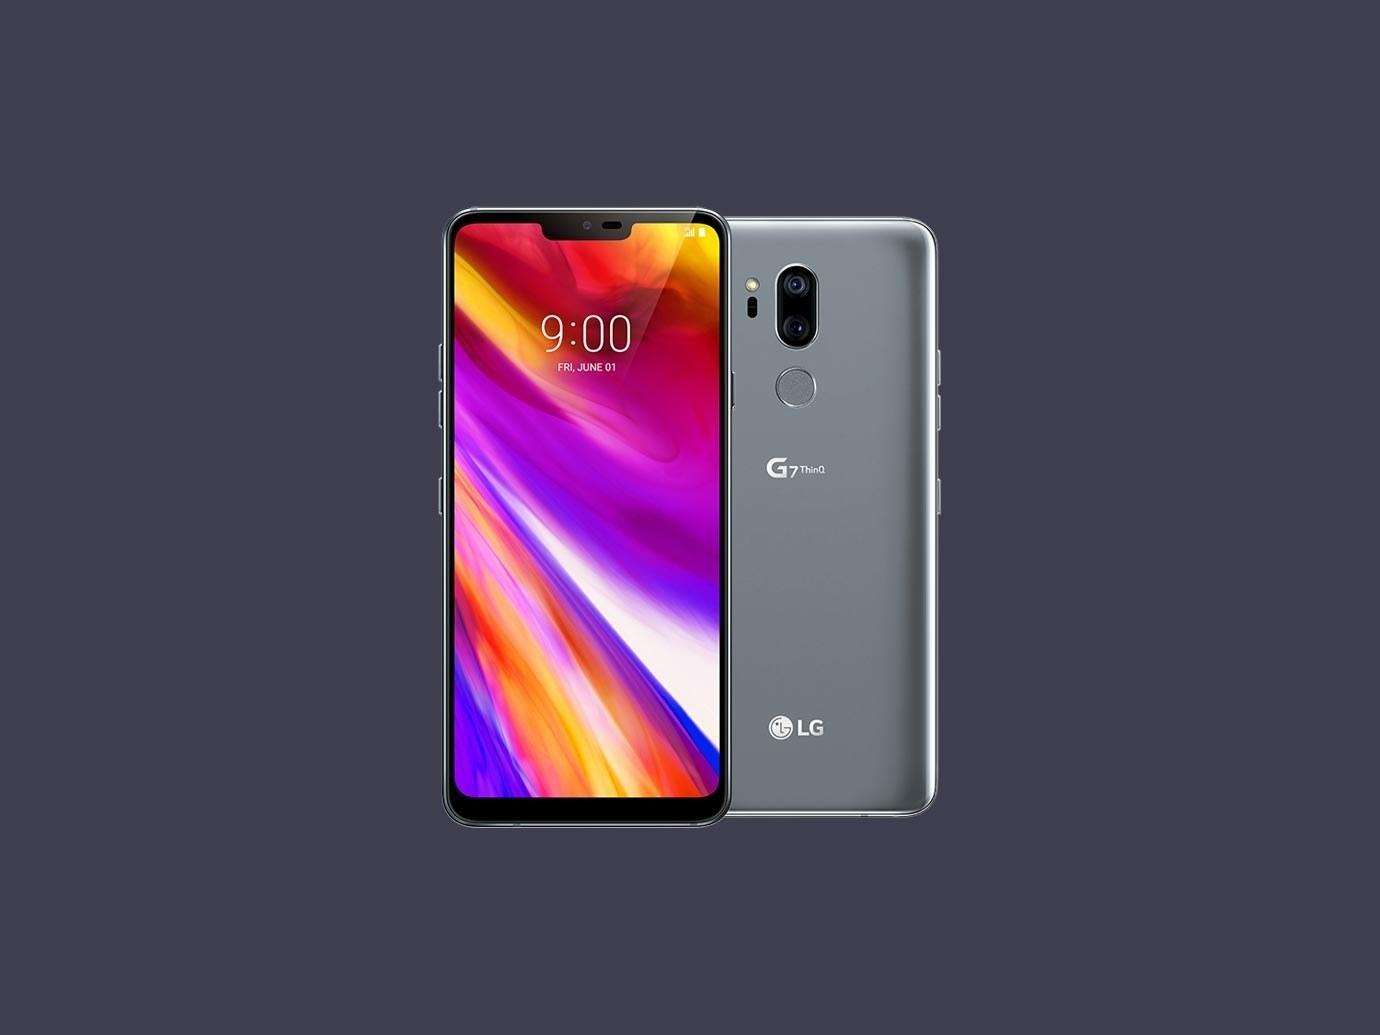 LG G7 ThinQ (Pie). V40 ThinQ. and LG G6 to get new update in Q1 2019